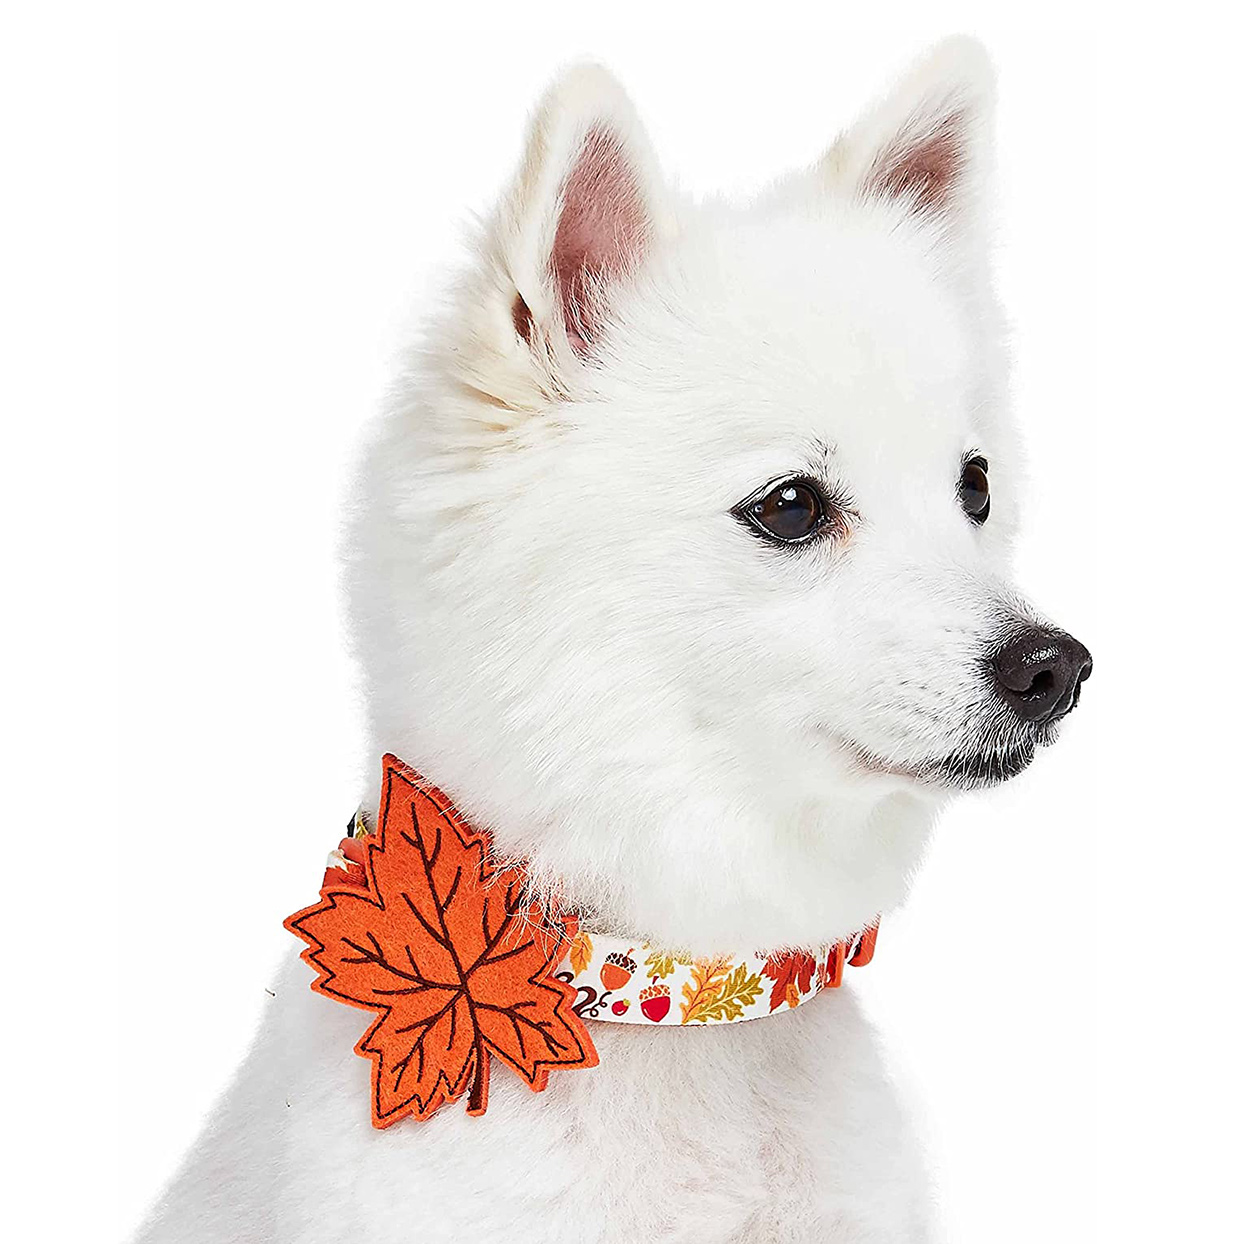 Dog wearing a Blueberry Pet Leaf Collar on a white background